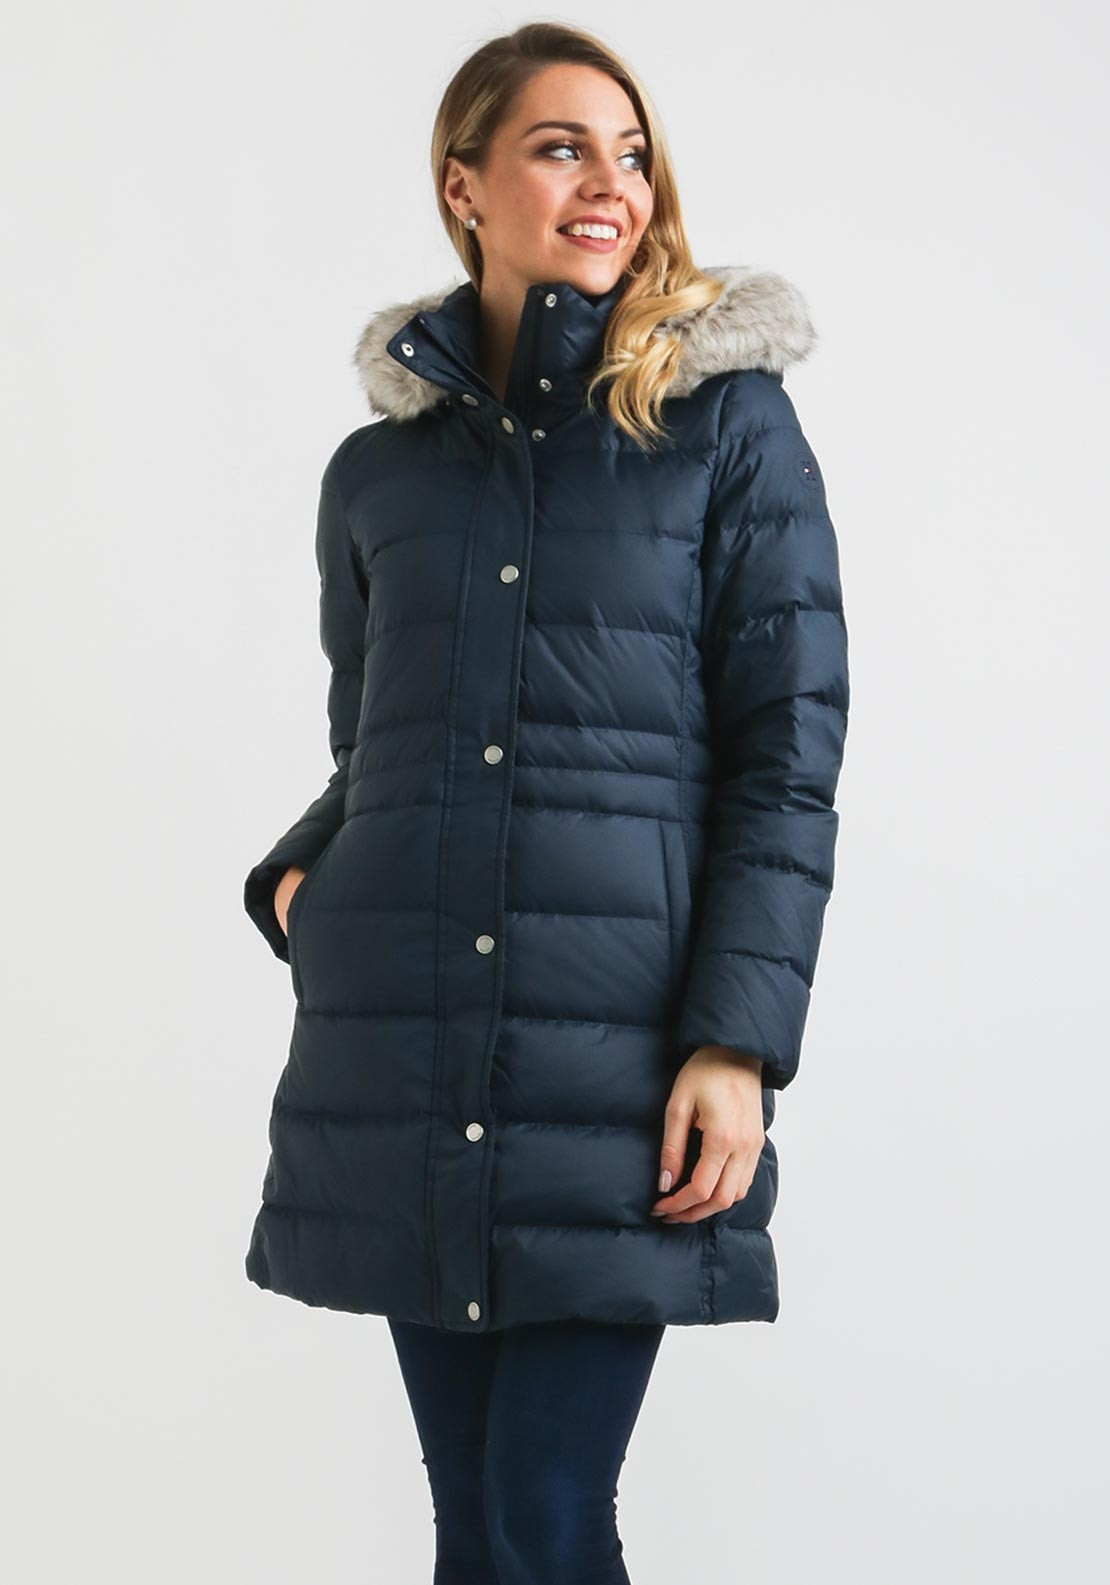 c68ff1973114 Tommy Hilfiger Womens Tyra Quilted Coat